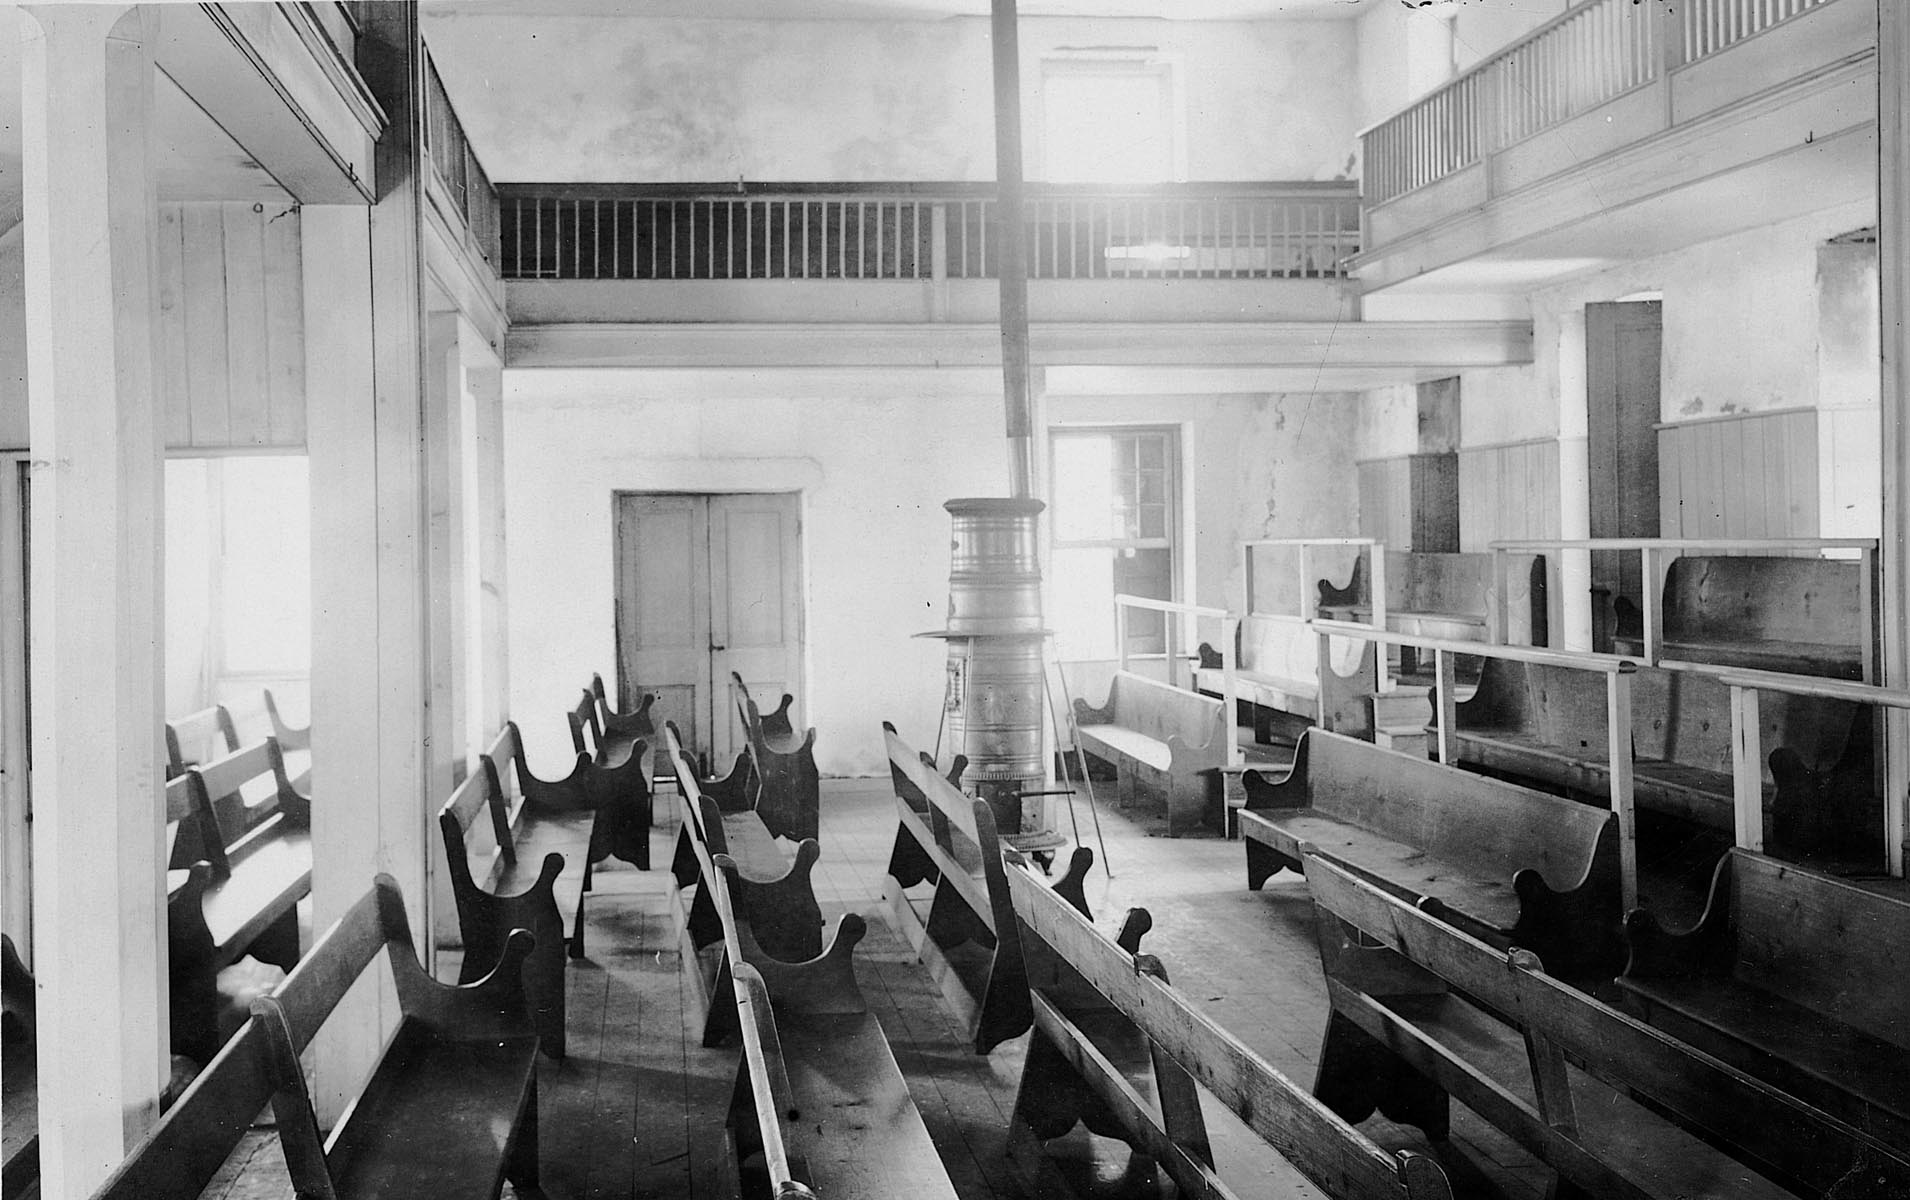 Quaker Meeting House Interior